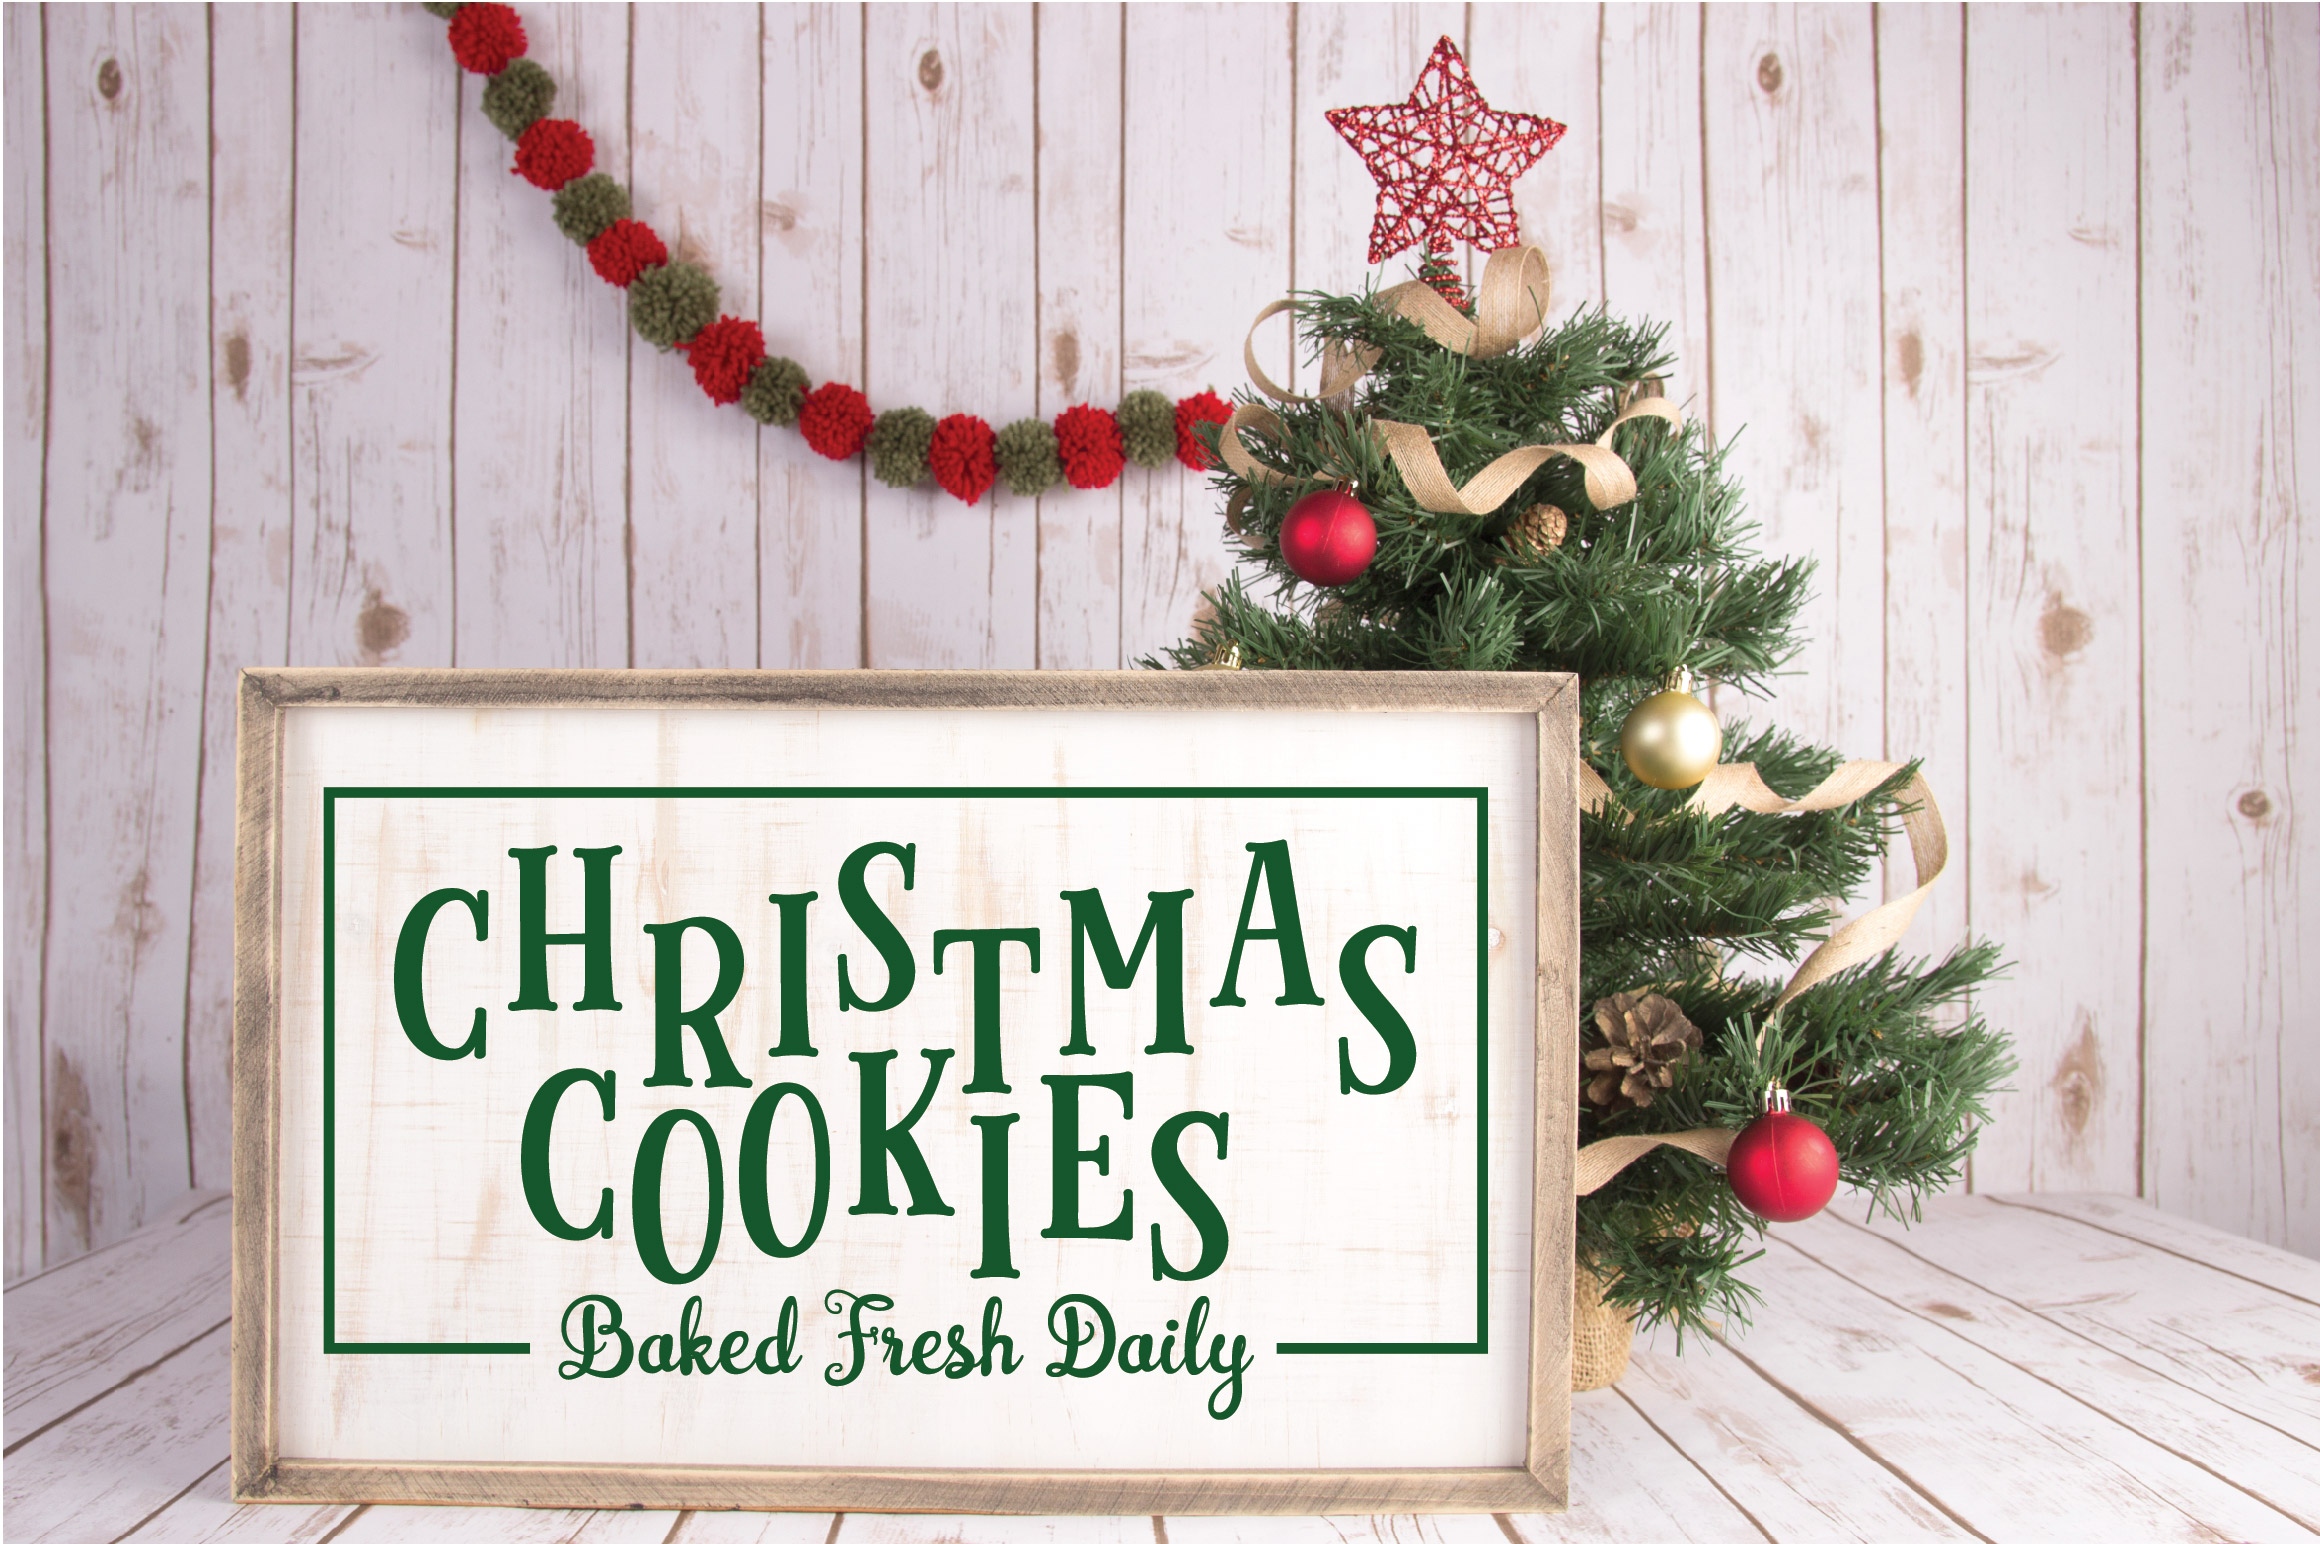 Christmas SVG Cut File - Christmas Cookies SVG DXF PNG EPS example image 2